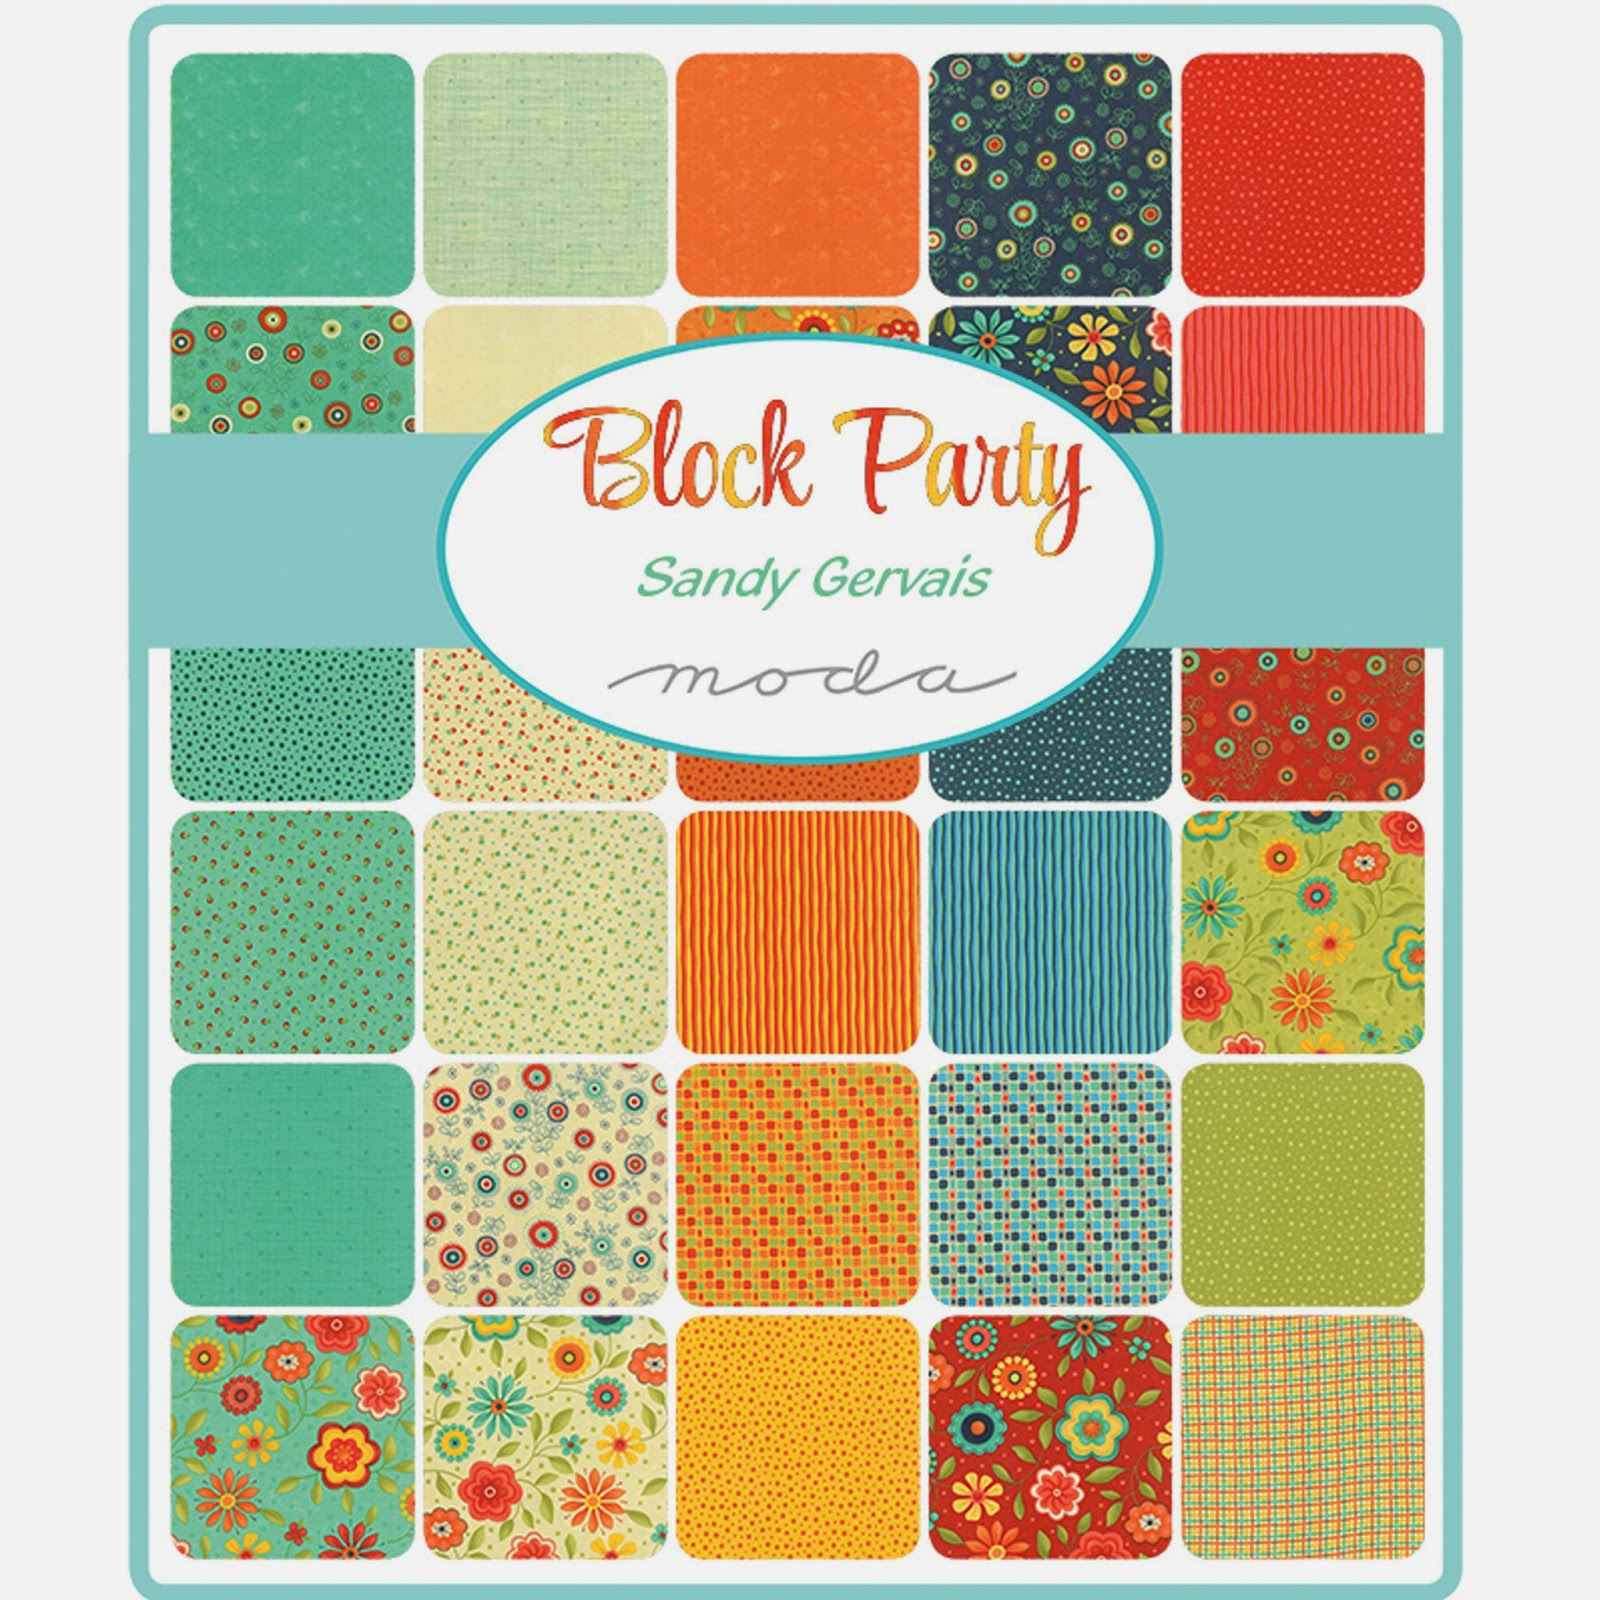 Moda BLOCK PARTY Fabric by Sandy Gervais for Moda Fabrics